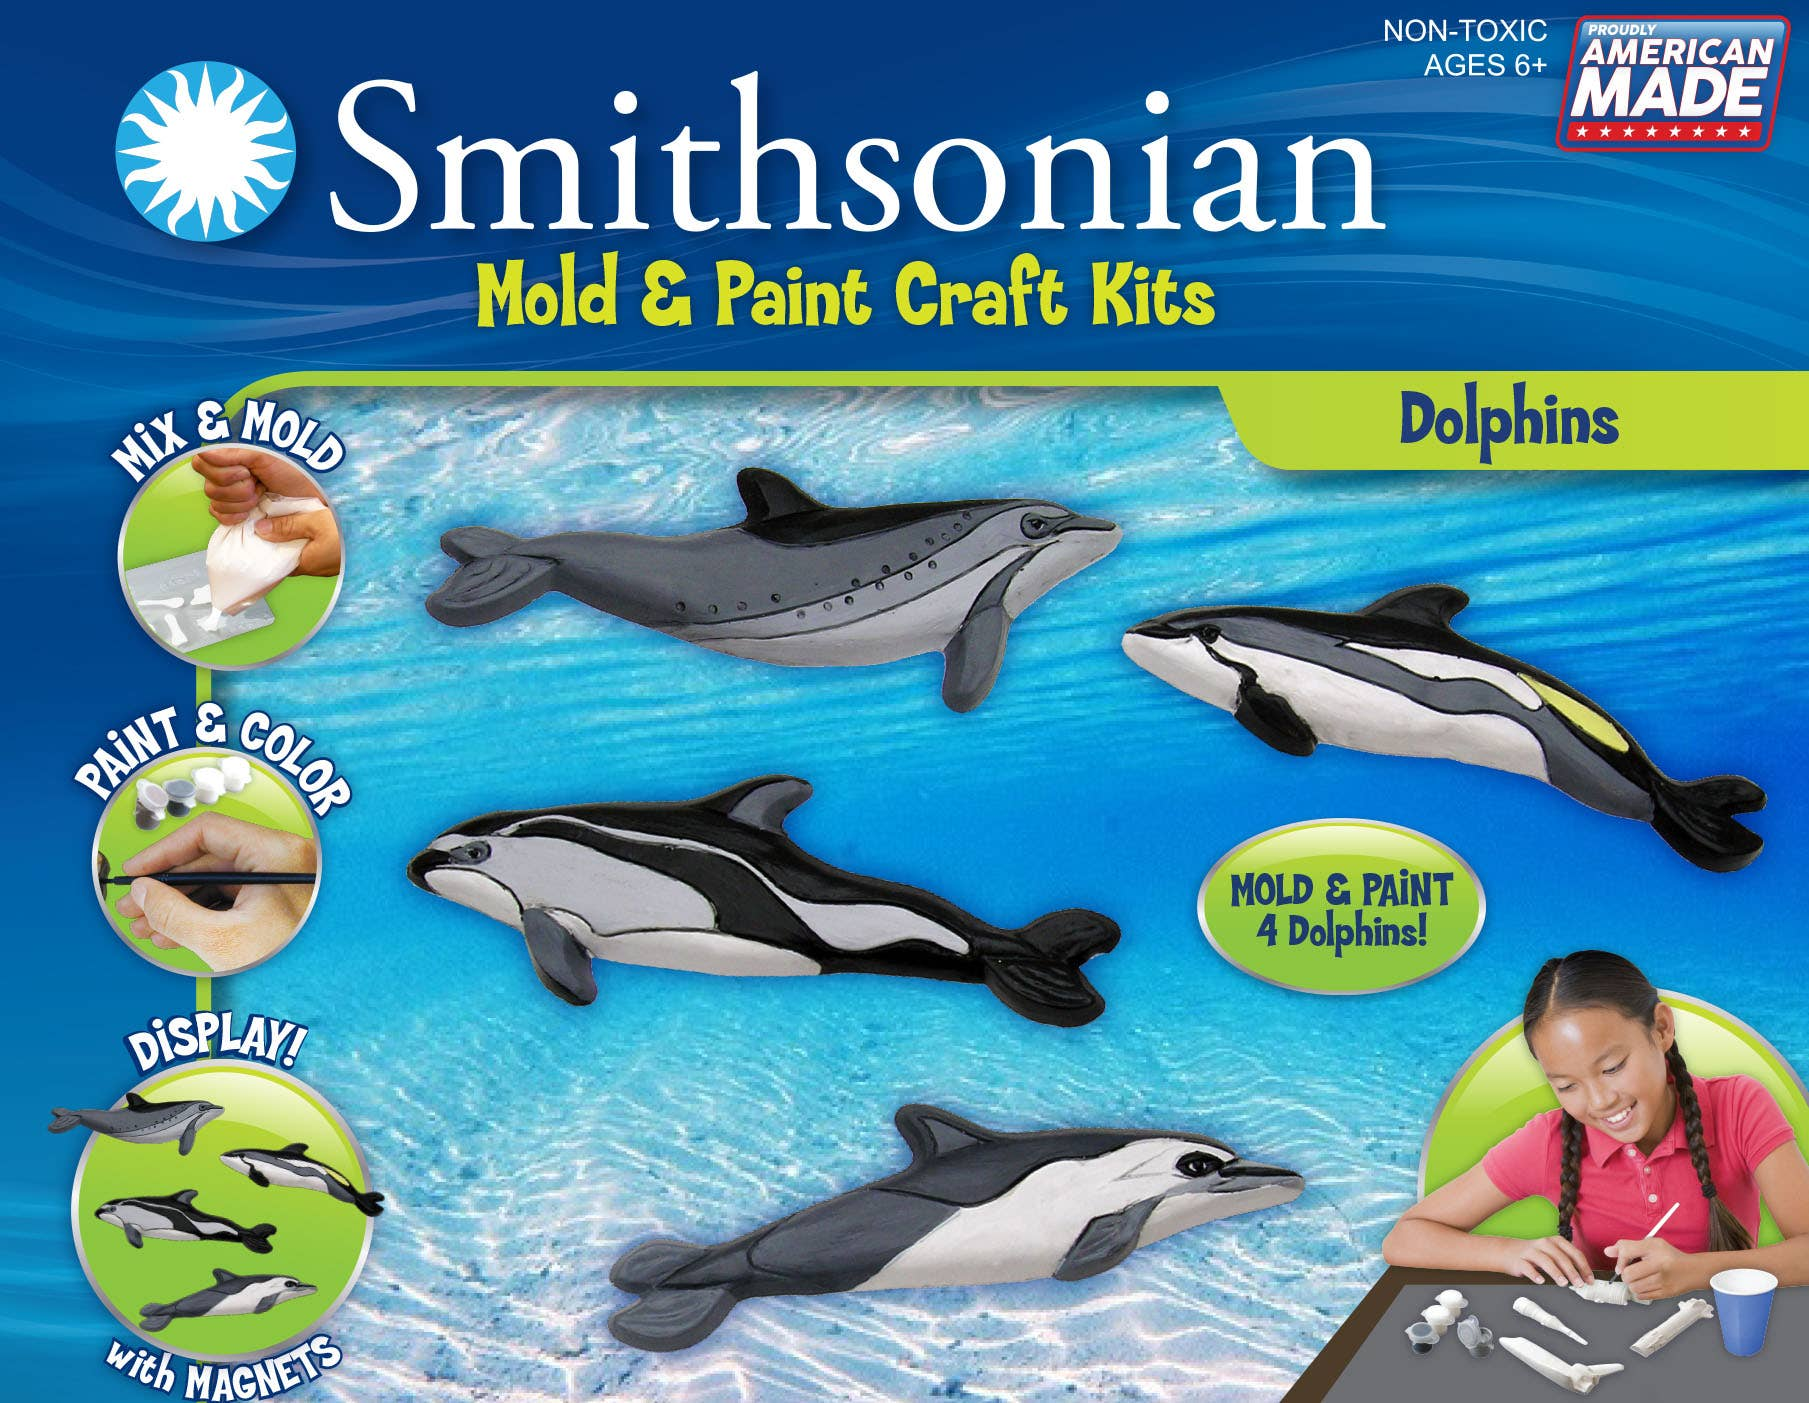 Smithsonian mold and paint dolphin kit for kids with four cast dolphins with magnet backing for displaying the arts and crafts